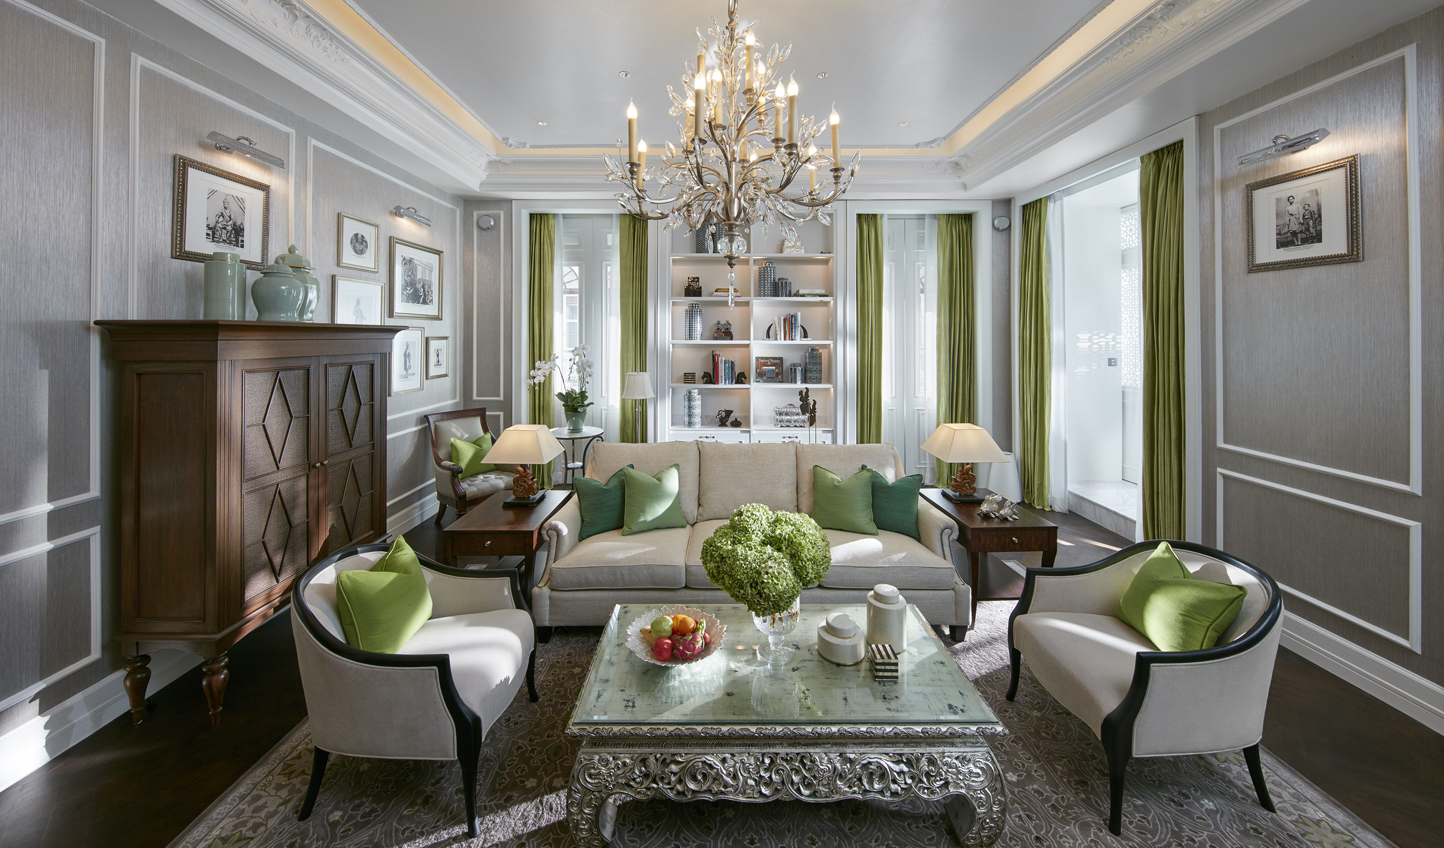 Elegant decor with hints of colour breathe fresh air into this oasis in the city